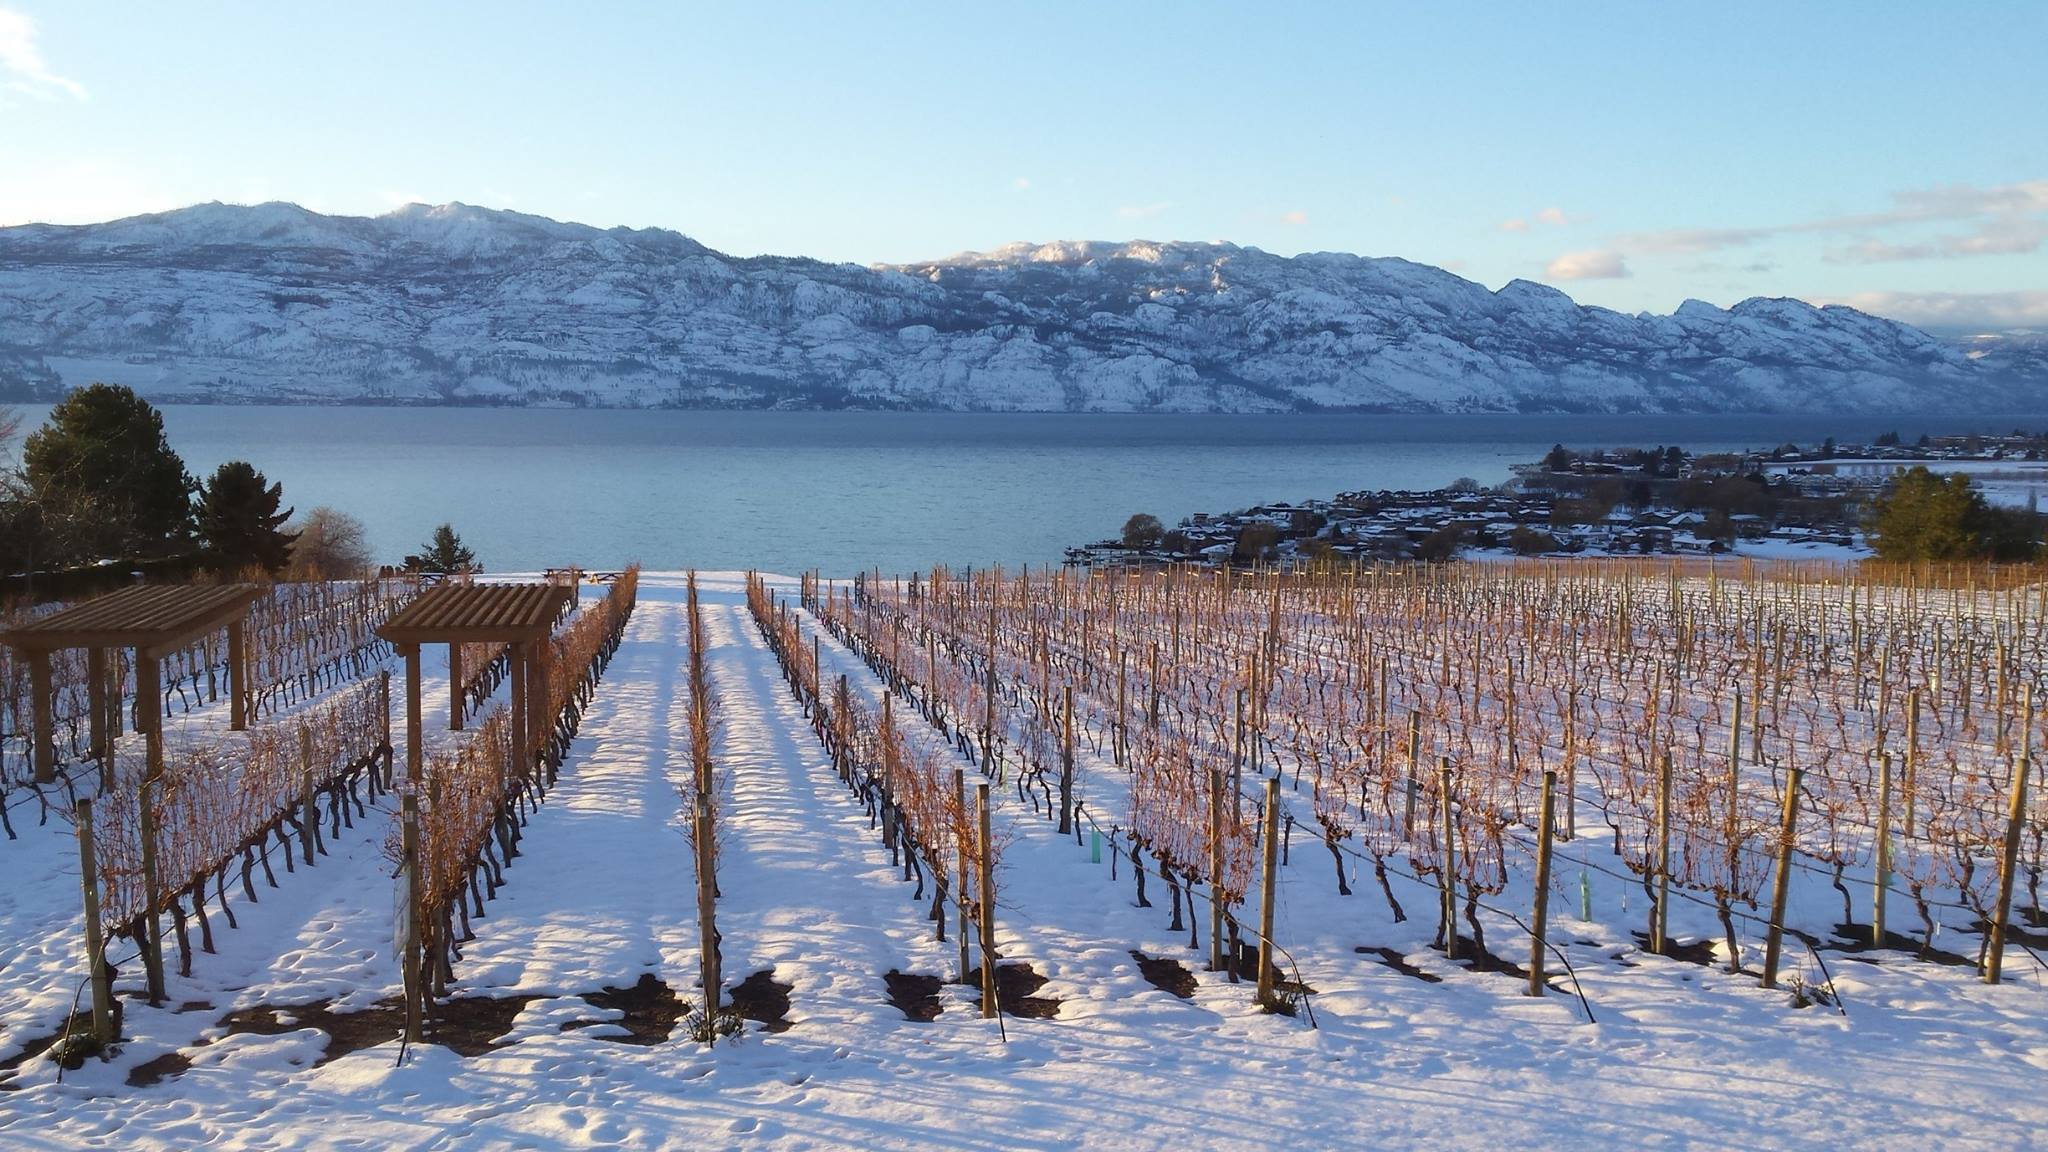 Our #FavouriteThings Holiday Gift Suggestions – Quails' Gate Winery